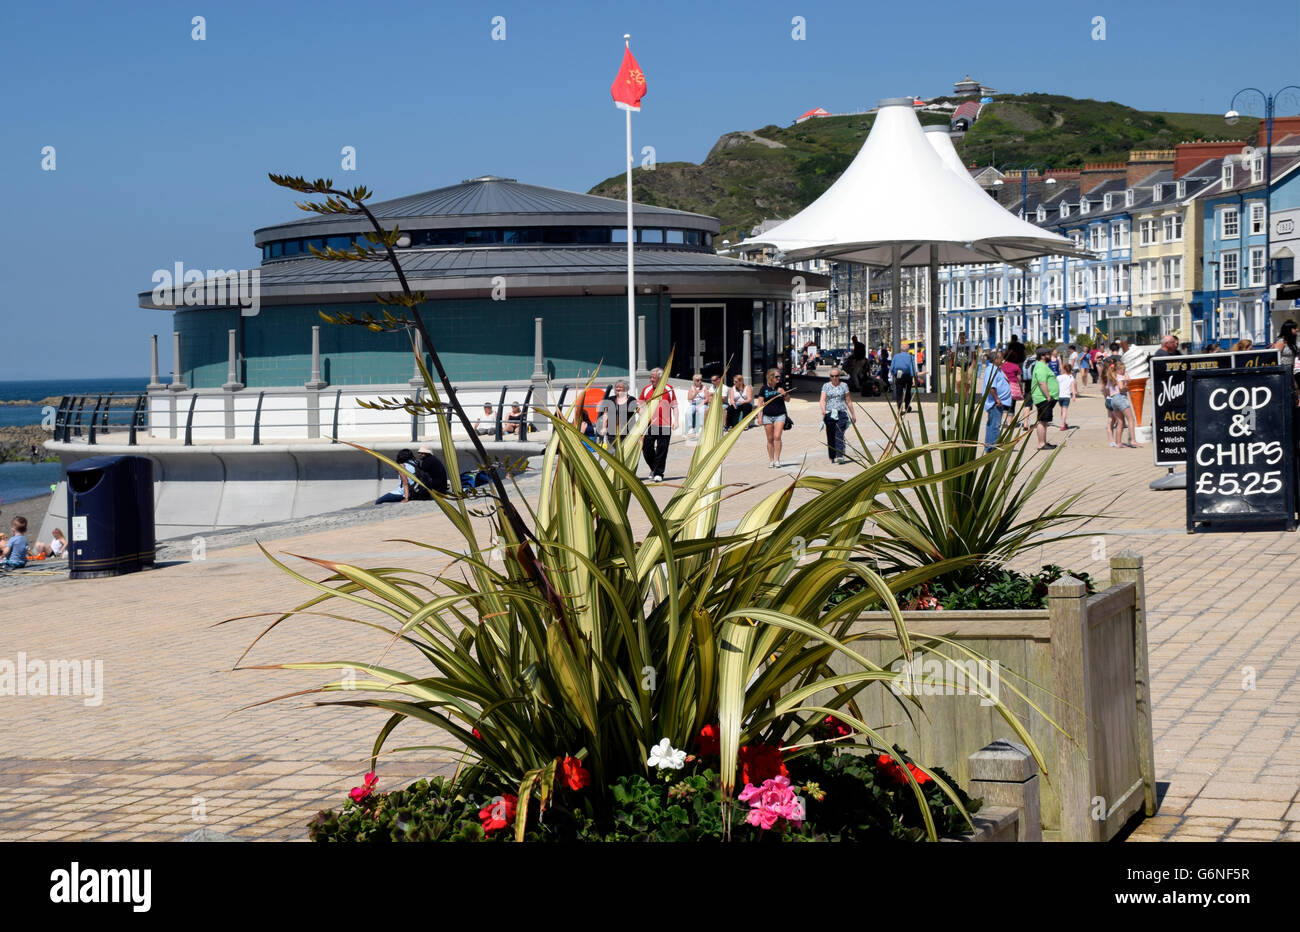 Aberystwyth sea front promenade with  new Bandstand. - Stock Image